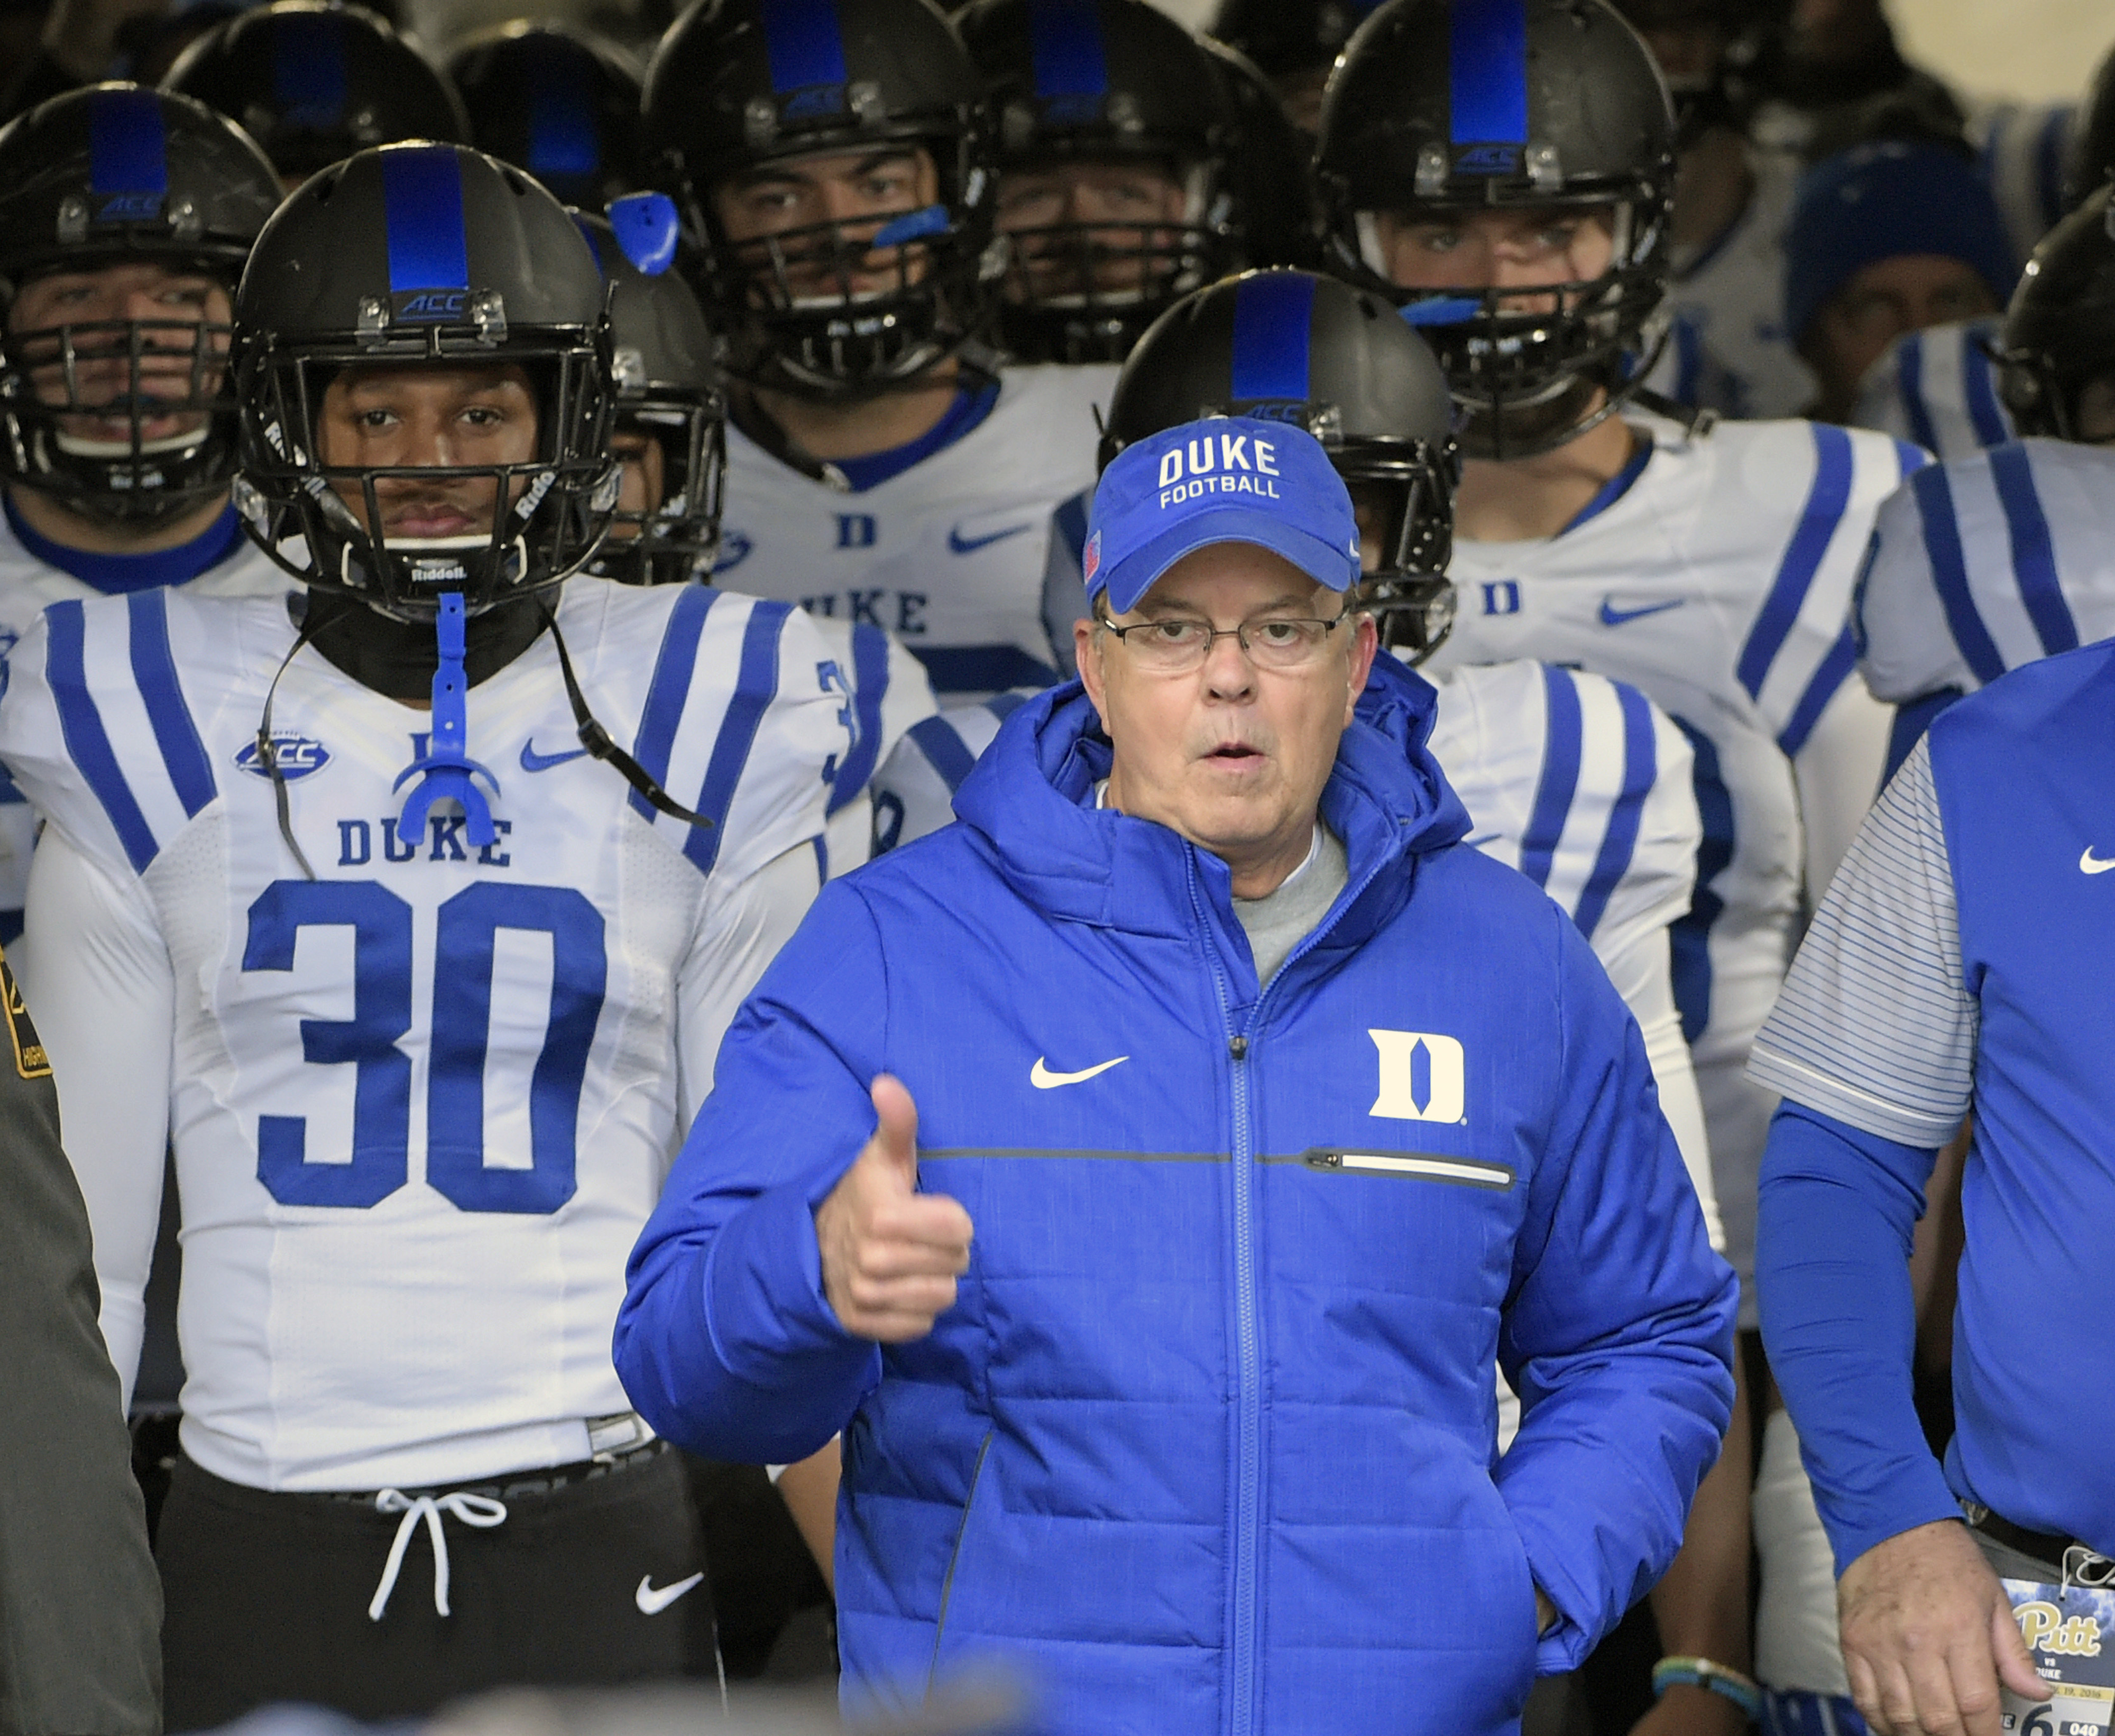 Duke head coach David Cutcliffe leads his team onto the field at the start of an NCAA college football game against the Pittsburgh Panthers in Pittsburgh, Saturday, Nov. 19, 2016. (AP Photo/Fred Vuich)